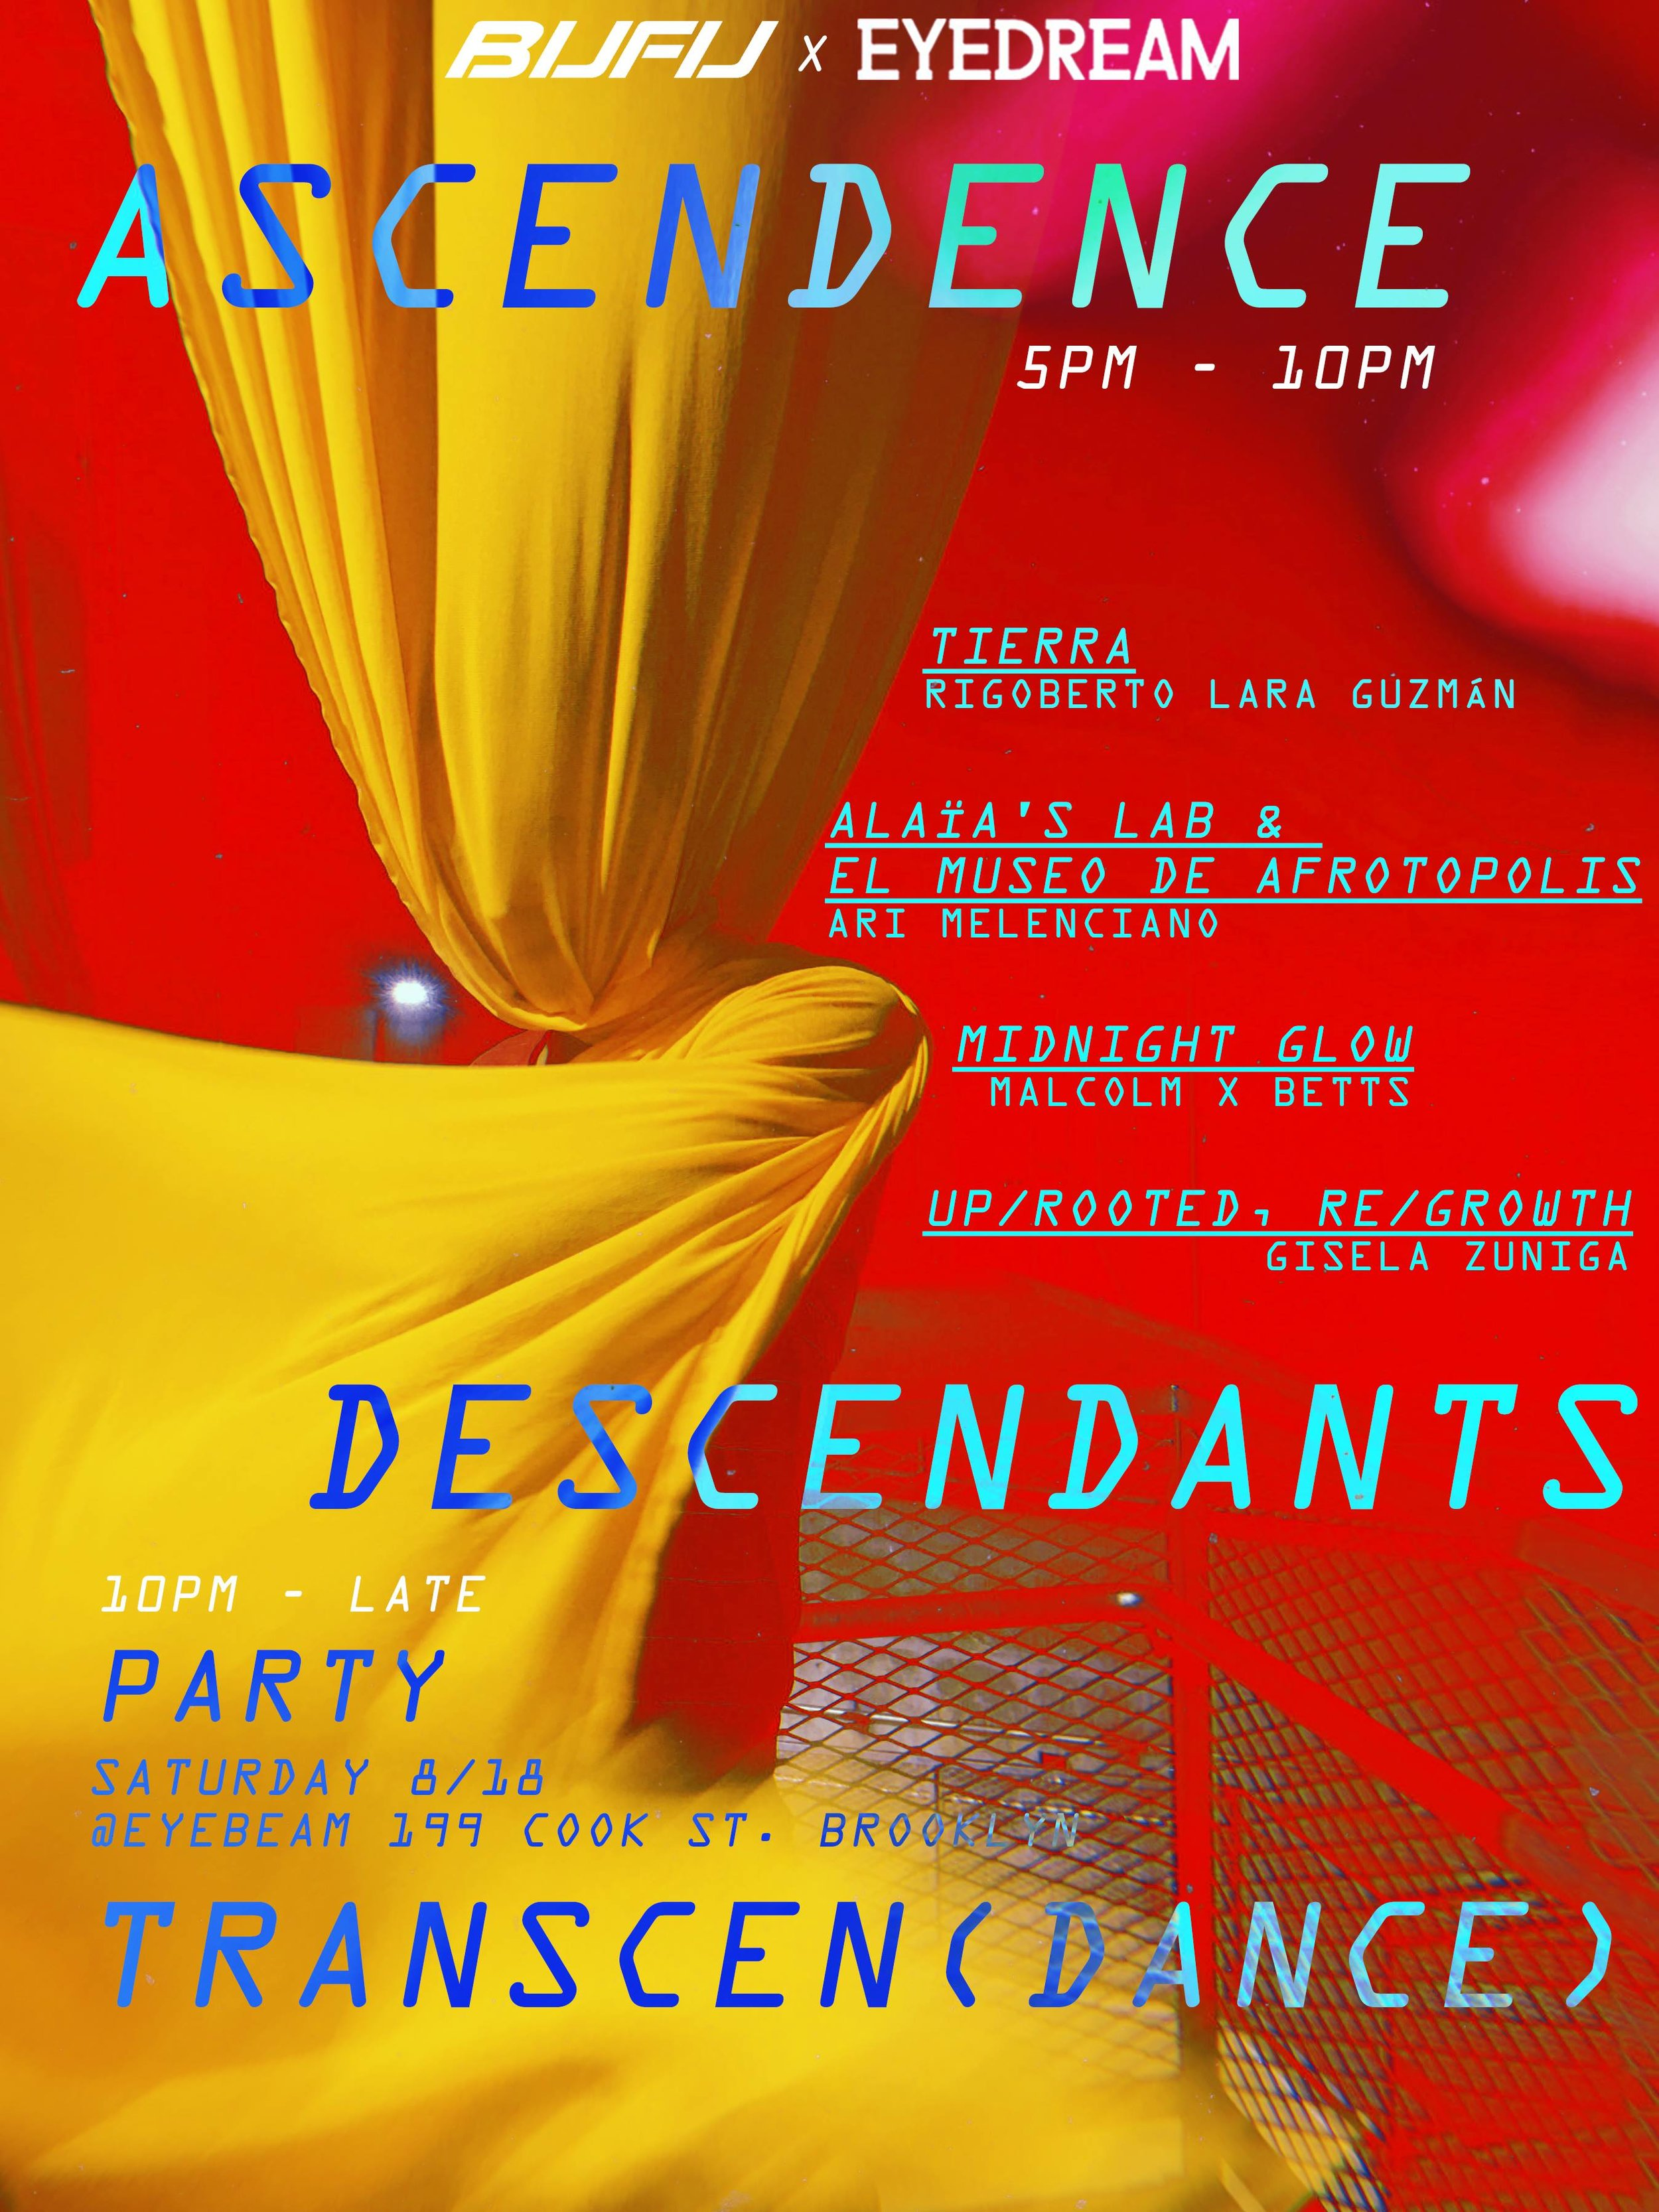 """ASCENDENCEDESCENDANTSTRANSCEN(DANCE) - A night activating our relationship to lineageto earthto visionto us ☁️☁️☁️☁️☁️☁️☁️☁️☁️☁️☁️☁️☁️☁️☁️☁️☁️☁️☁️☁️☁️☁️☁️MOVEMENTS // INSTALLATIONS // SOUND // SCULPTUREWith Eyedream Residents Cohort 2Rigoberto Lara Guzman // Ari Melenciano // Malcom X Betts // Gisela Zuniga5:00PM - 10:00PMAfter Party10:00PM - LATE☁️☁️☁️☁️☁️☁️☁️☁️☁️☁️☁️☁️☁️☁️☁️☁️☁️☁️☁️☁️☁️☁️☁️""""El Museo de Afrotopolis"""" - Ari Melencianoa speculative convening practicing futurism while in the future. No racism, capitalism, now what?🔥🔥🔥""""Up/Rooted, Re/Growth"""" - Gisela Zunigainvestigates is in interactive mixed media installation investigating the memories the memories of the landscape and natural world in the lower Rio Grande Valley in South Texas, as environmental pollution and increasing militarization change what Home looks and feels like.🔥🔥🔥Midnight Glow: Black Breathe / Black Noise"""" - Malcom X Bettsa call to action for the necessity for breathing while Black, the complexity within Blackness and deconstructing the violence against Black bodies that we have to attend to in this world. This is also an exploration of labor, love, time travel, Black joy, the mundane, the conjuring that may or may not arise during duration.🔥🔥🔥""""TIERRA: A Reclamation"""" - Rigoberto Lara Guzmana site specific performance that explores practices of reciprocity, communal labor, and proximity between black & brown bodies. Tierra is about the dirt we leave behind and the seeds we sow when we cede.🔥🔥🔥Alaïa's Lab - Ari Melancianoa living breathing interactive exhibition that continuously deconstructs and constructs Black culture via sounds and new media.🔥🔥🔥As apart of BUFU's EYEDREAM Residency """"Solidarity is Possible but not Inevitable"""" for more information bufubyusforus.com/eyedream COME THRU & TELL A FREEDonations at door to support EYEDREAM but v v freeOff the Morgan Ave L & Flushing Ave J***wheelchair accessible***"""